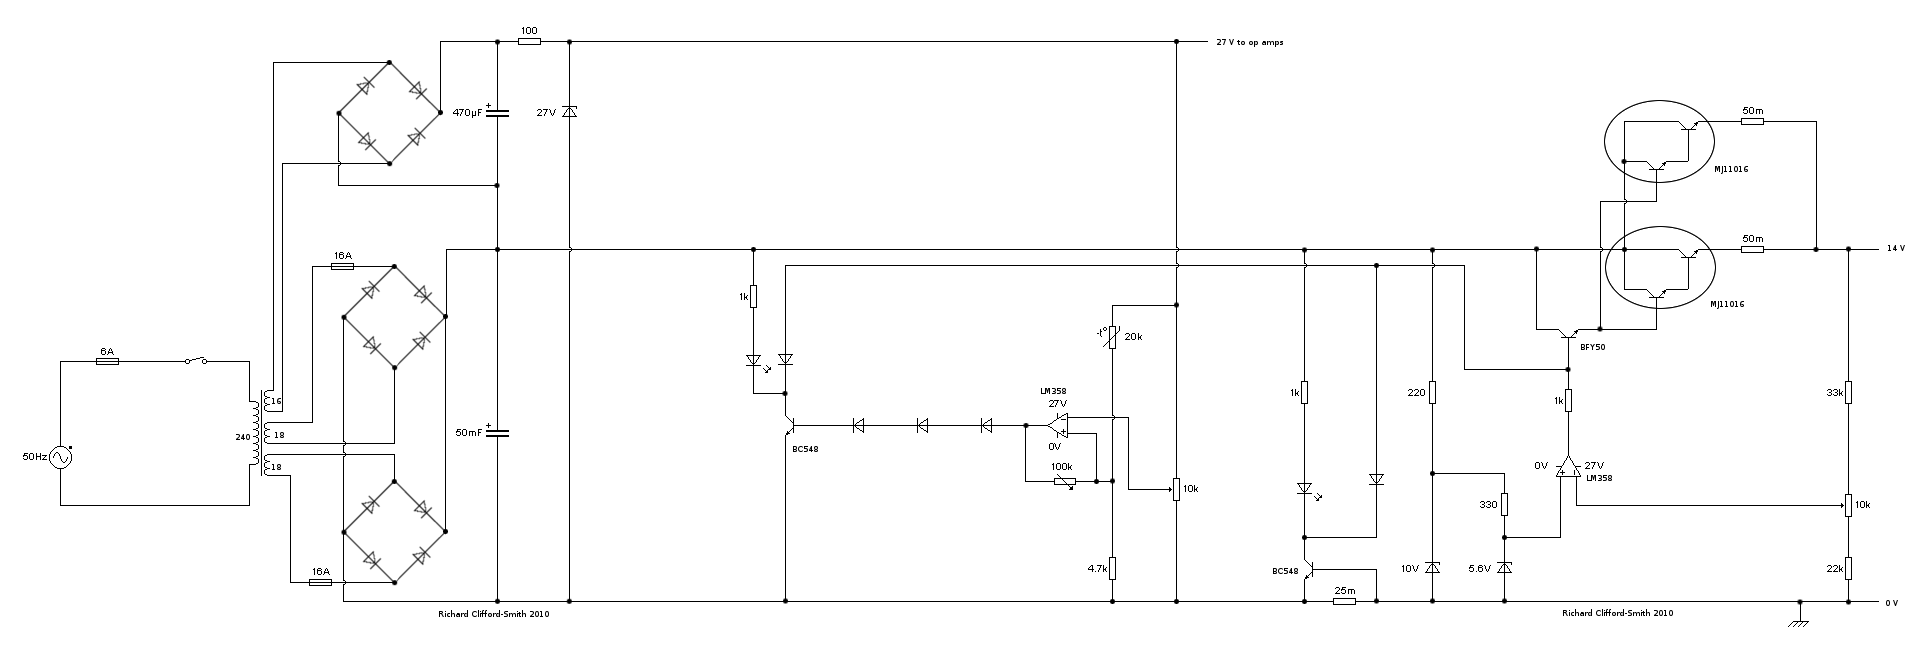 14 volt 25 amp battery chargerpower supply circuit diagram for the power supply pooptronica Image collections